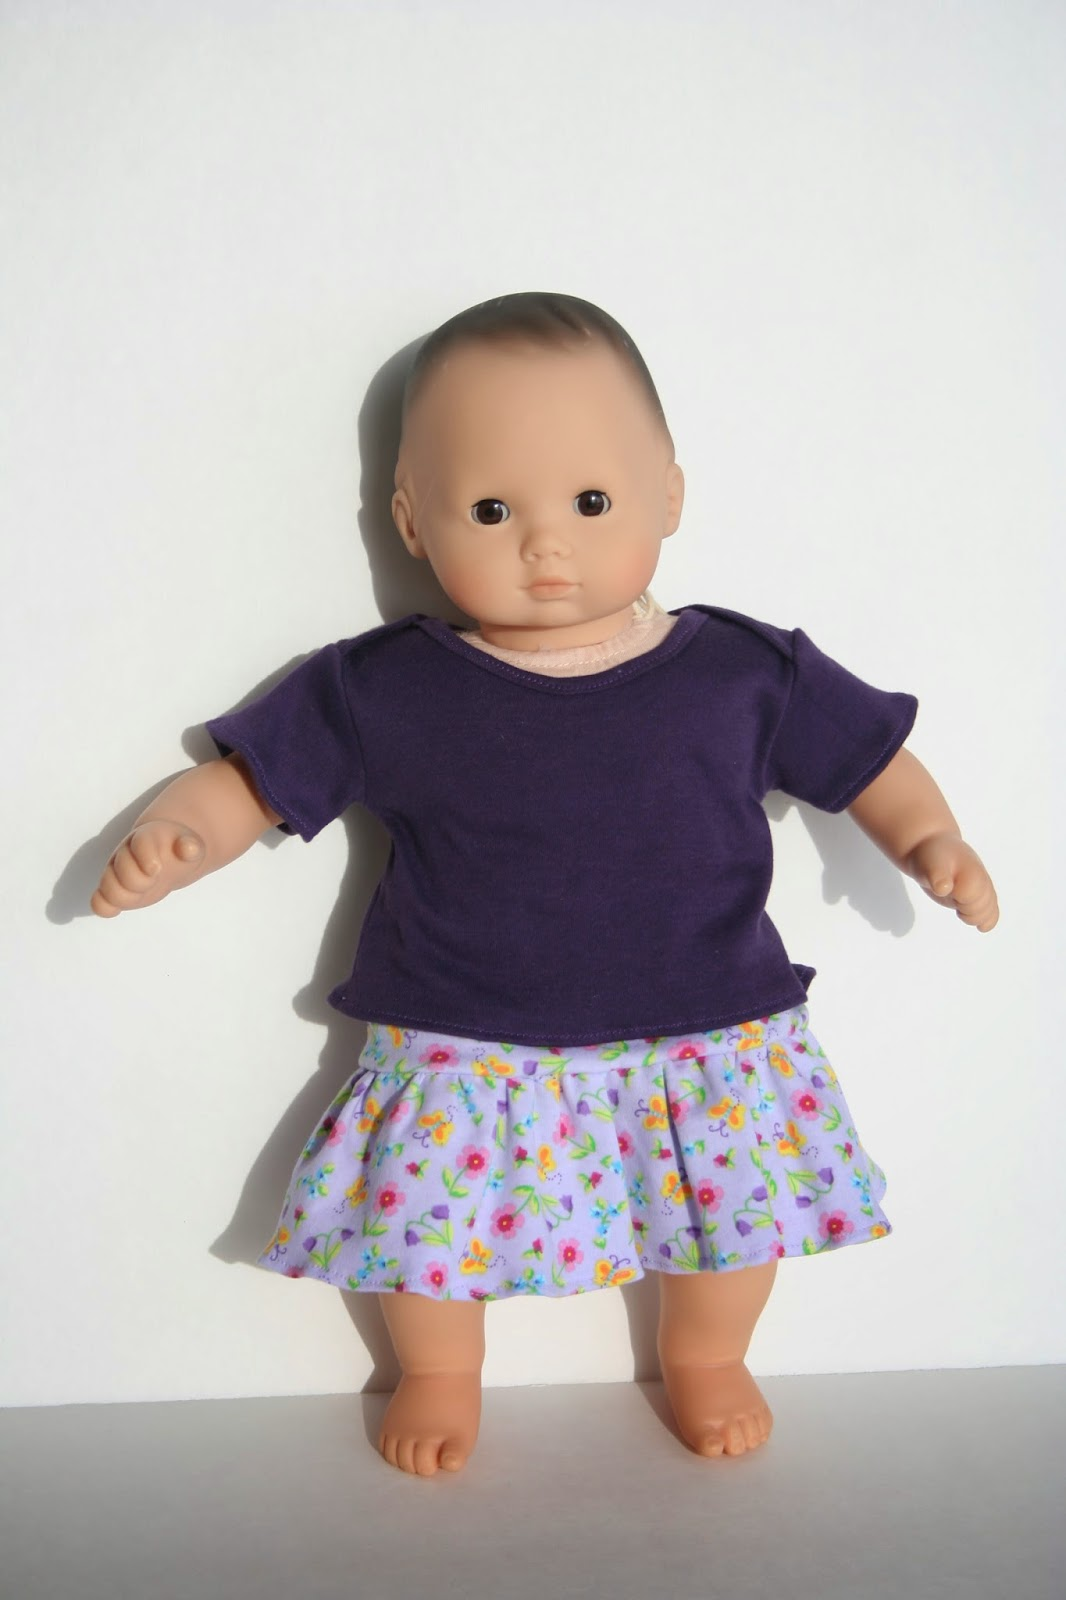 Find great deals on eBay for baby doll clothes. Shop with confidence.